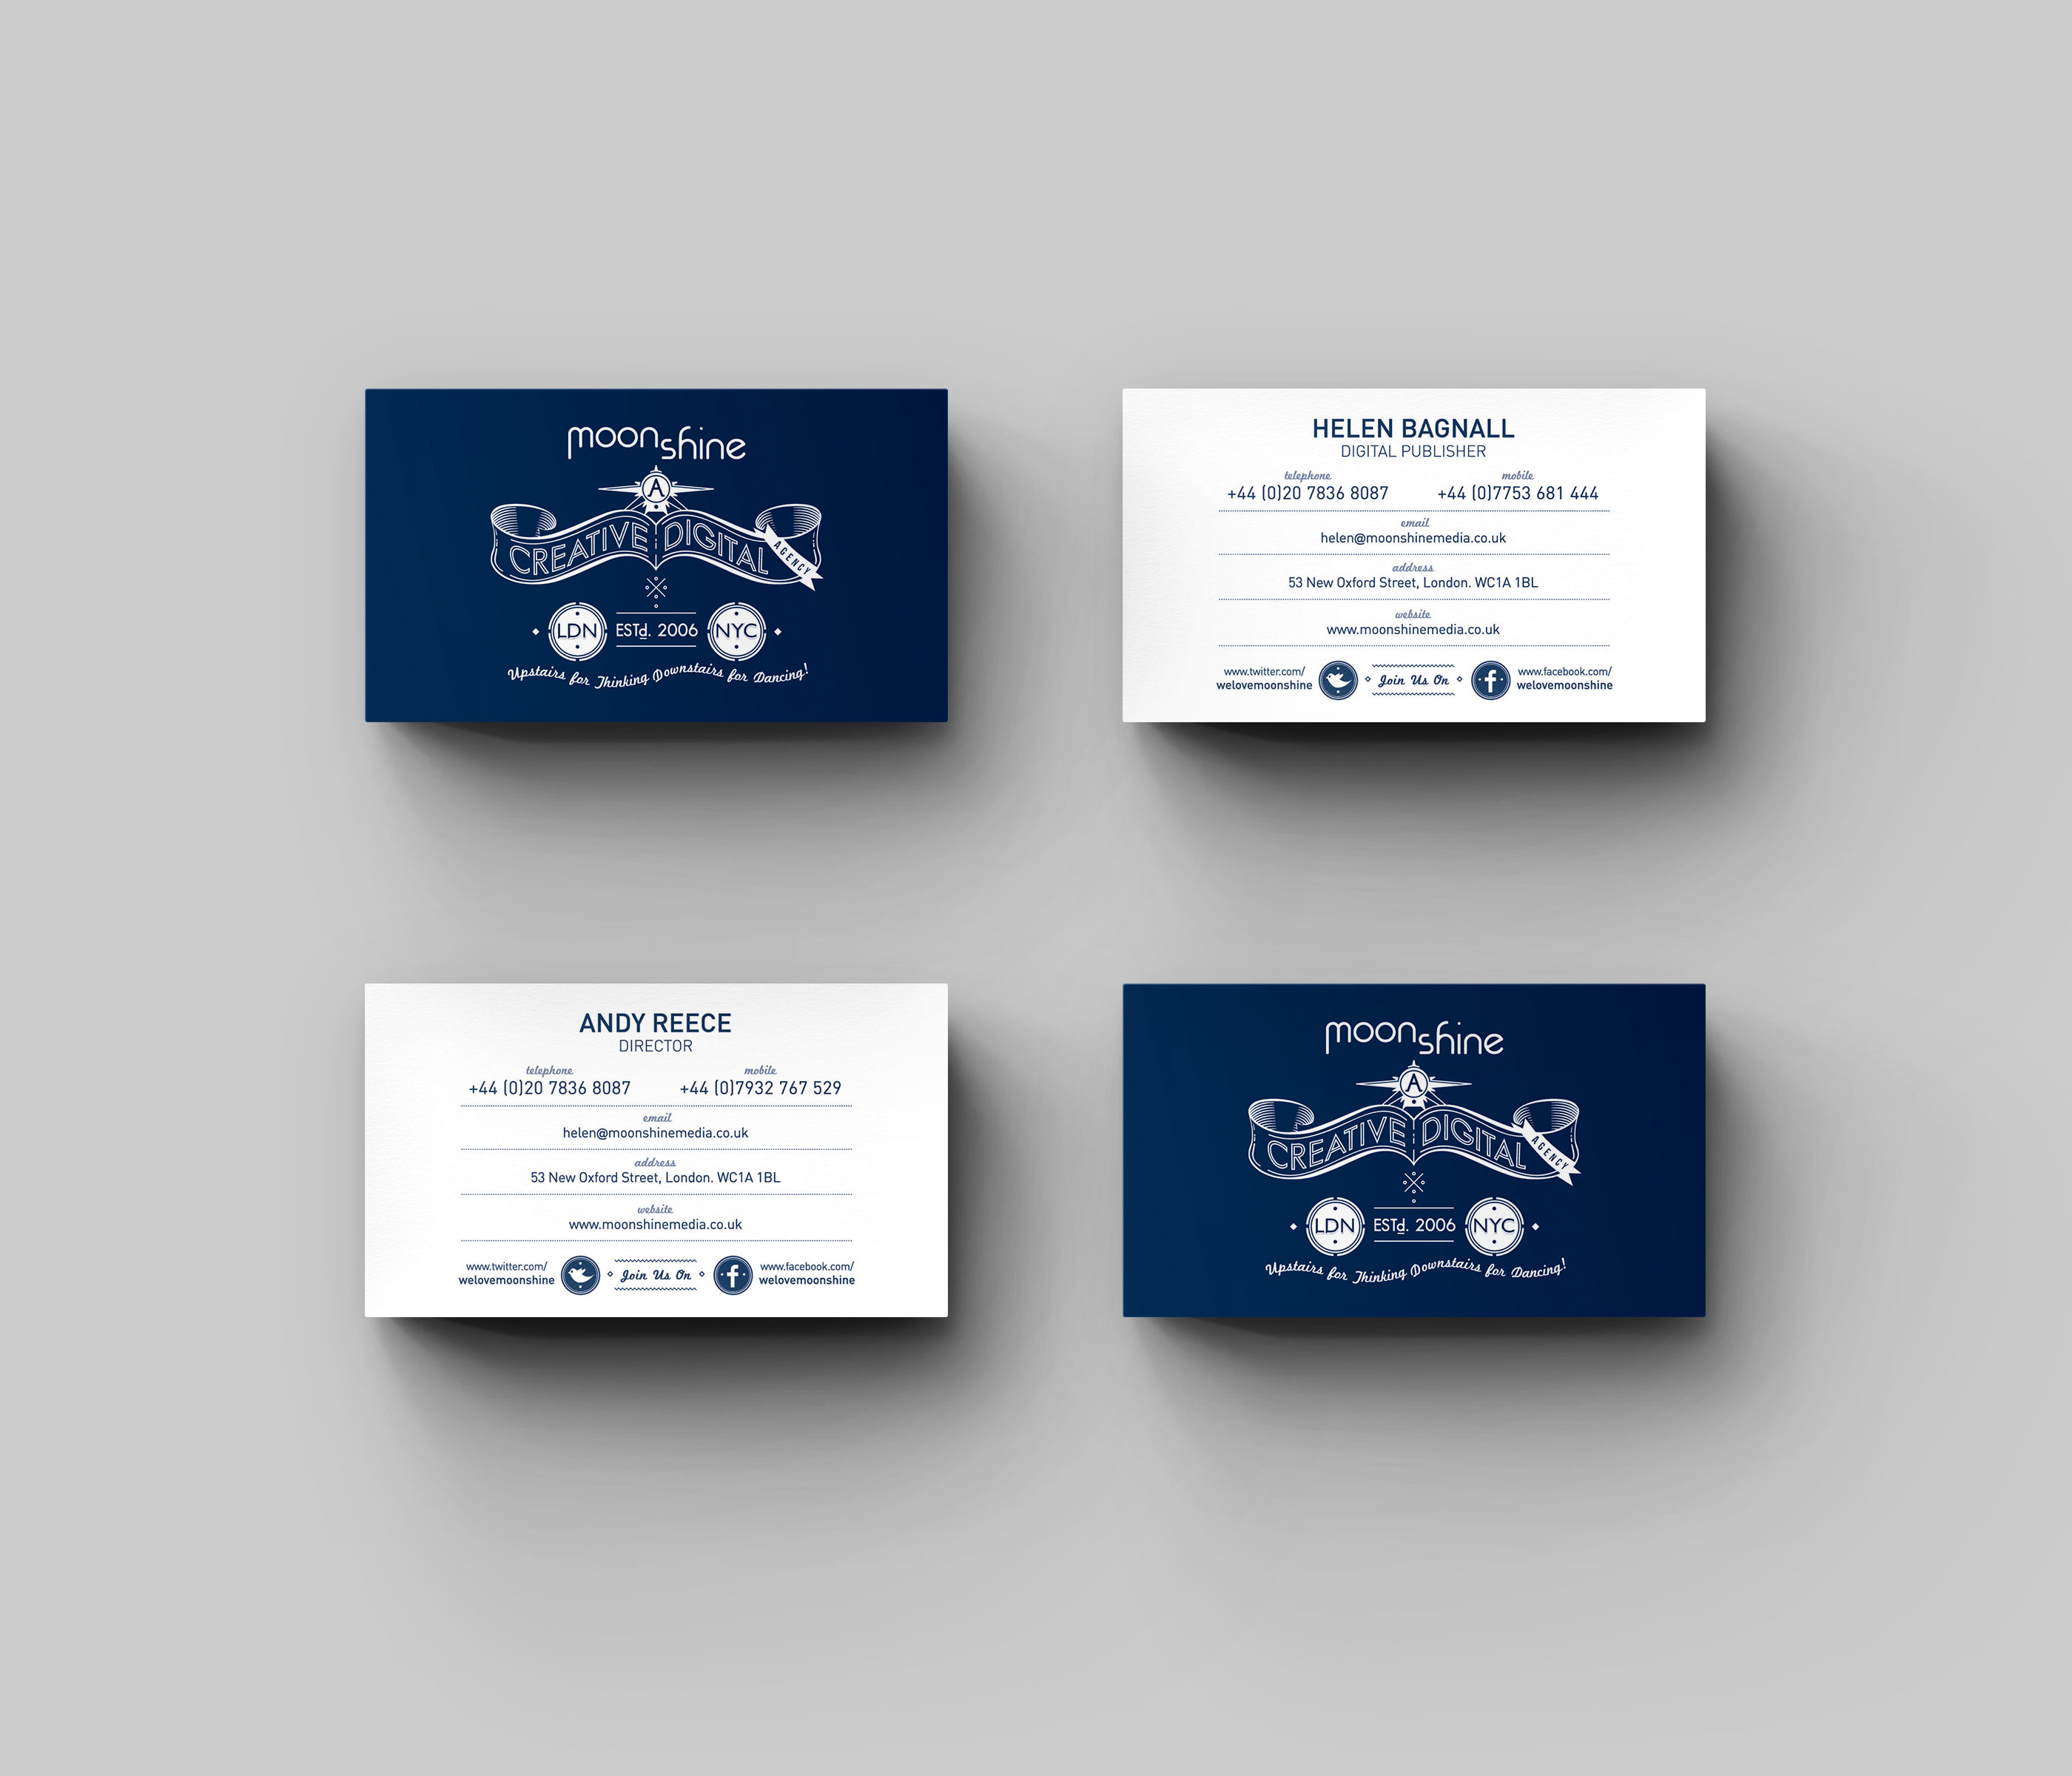 Magnificent luxury business cards london gallery business card beautiful business cards oxford illustration business card ideas reheart Choice Image